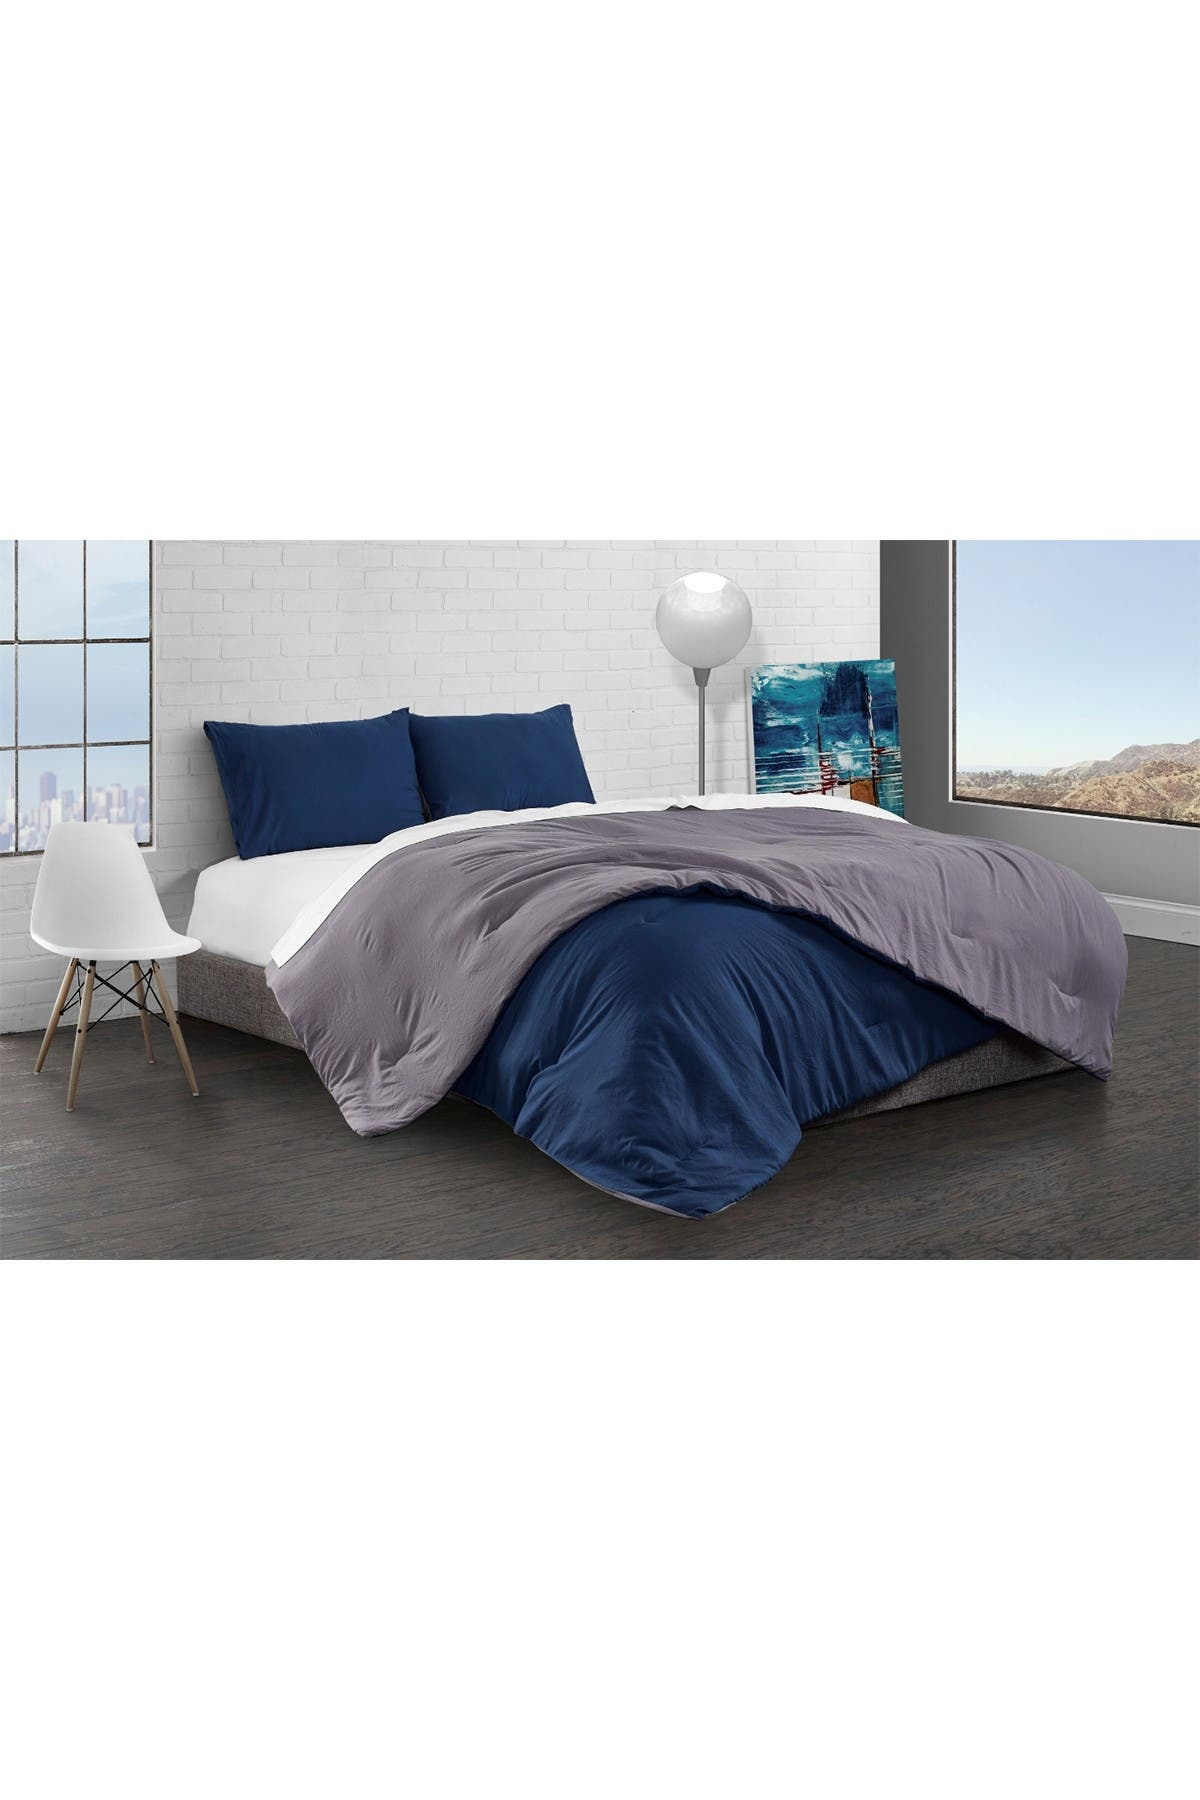 Image of Ella Jayne Reversible Brushed Microfiber Plush Down-Alt Comforter 3 Piece Set - King - Charcoal/Navy